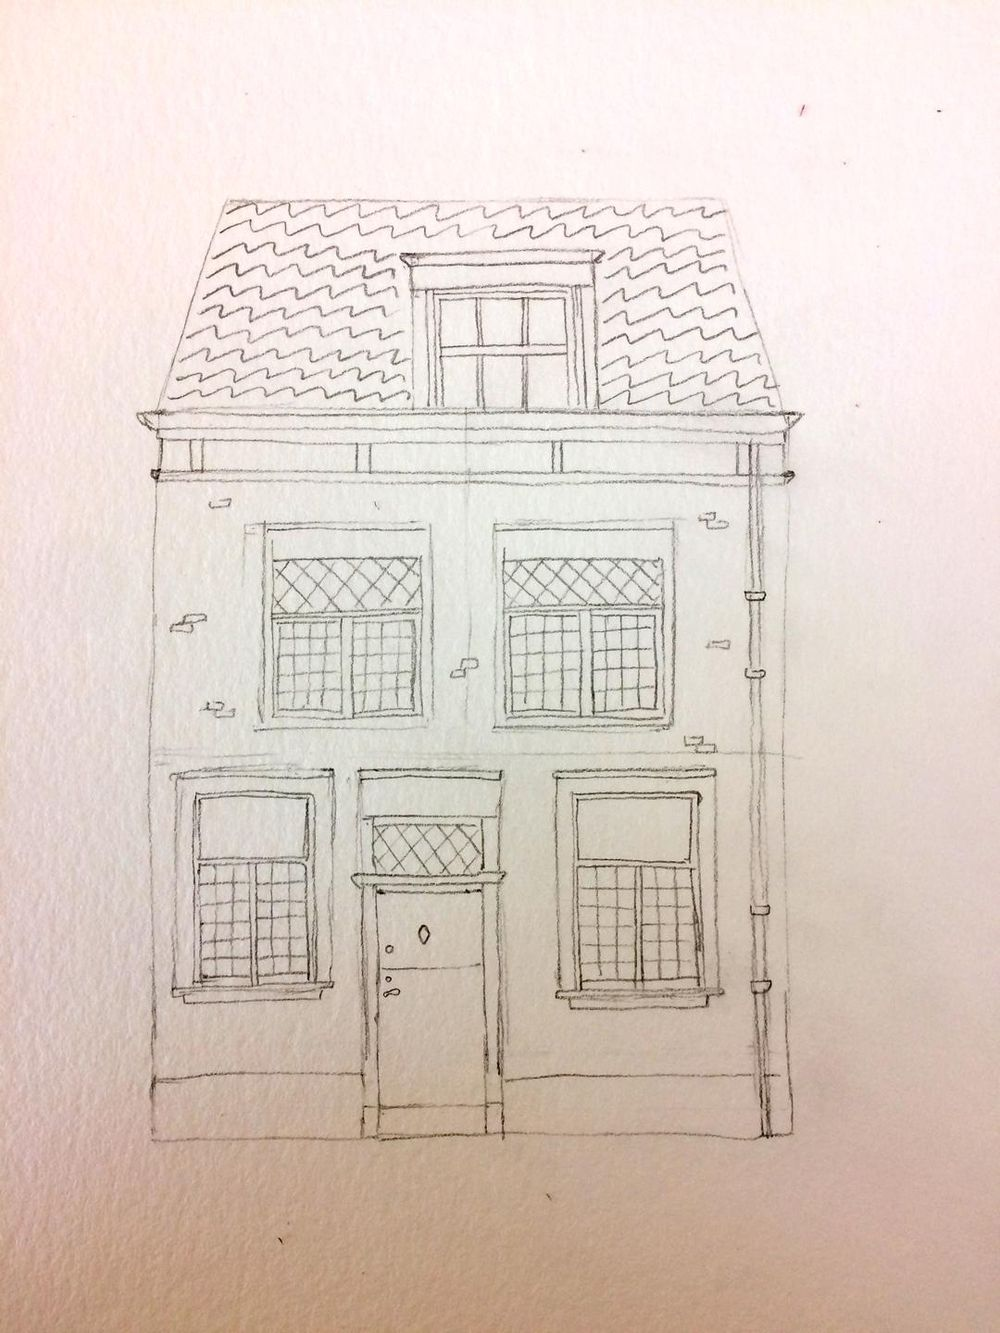 colorful Leiden house - image 1 - student project